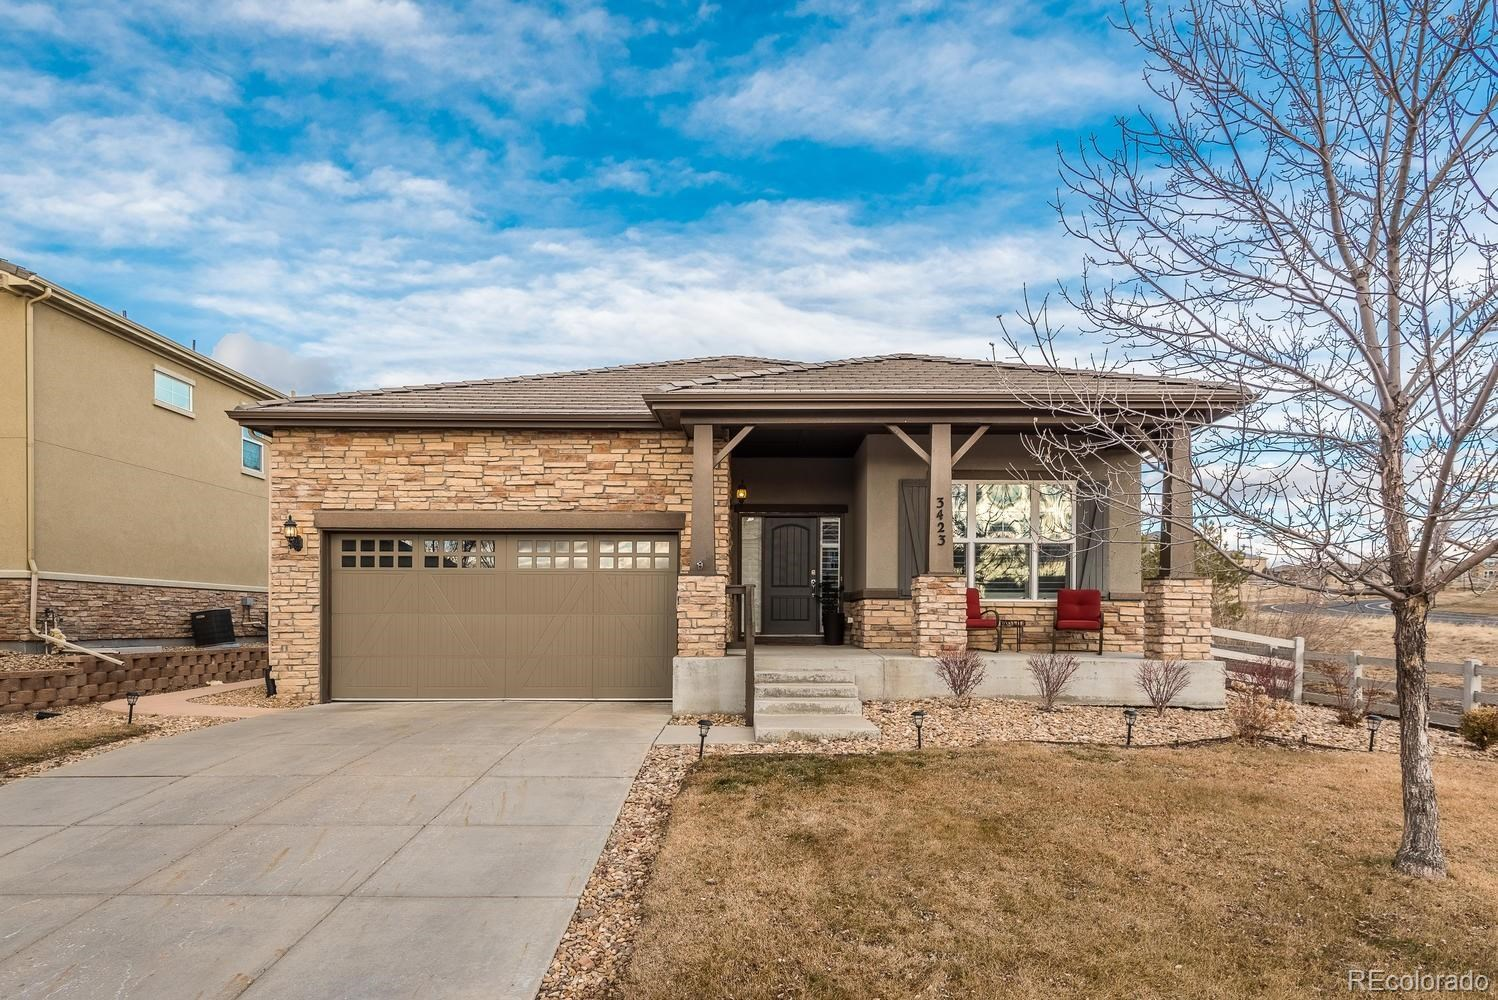 MLS# 5298170 - 3423 Vestal Loop, Broomfield, CO 80023